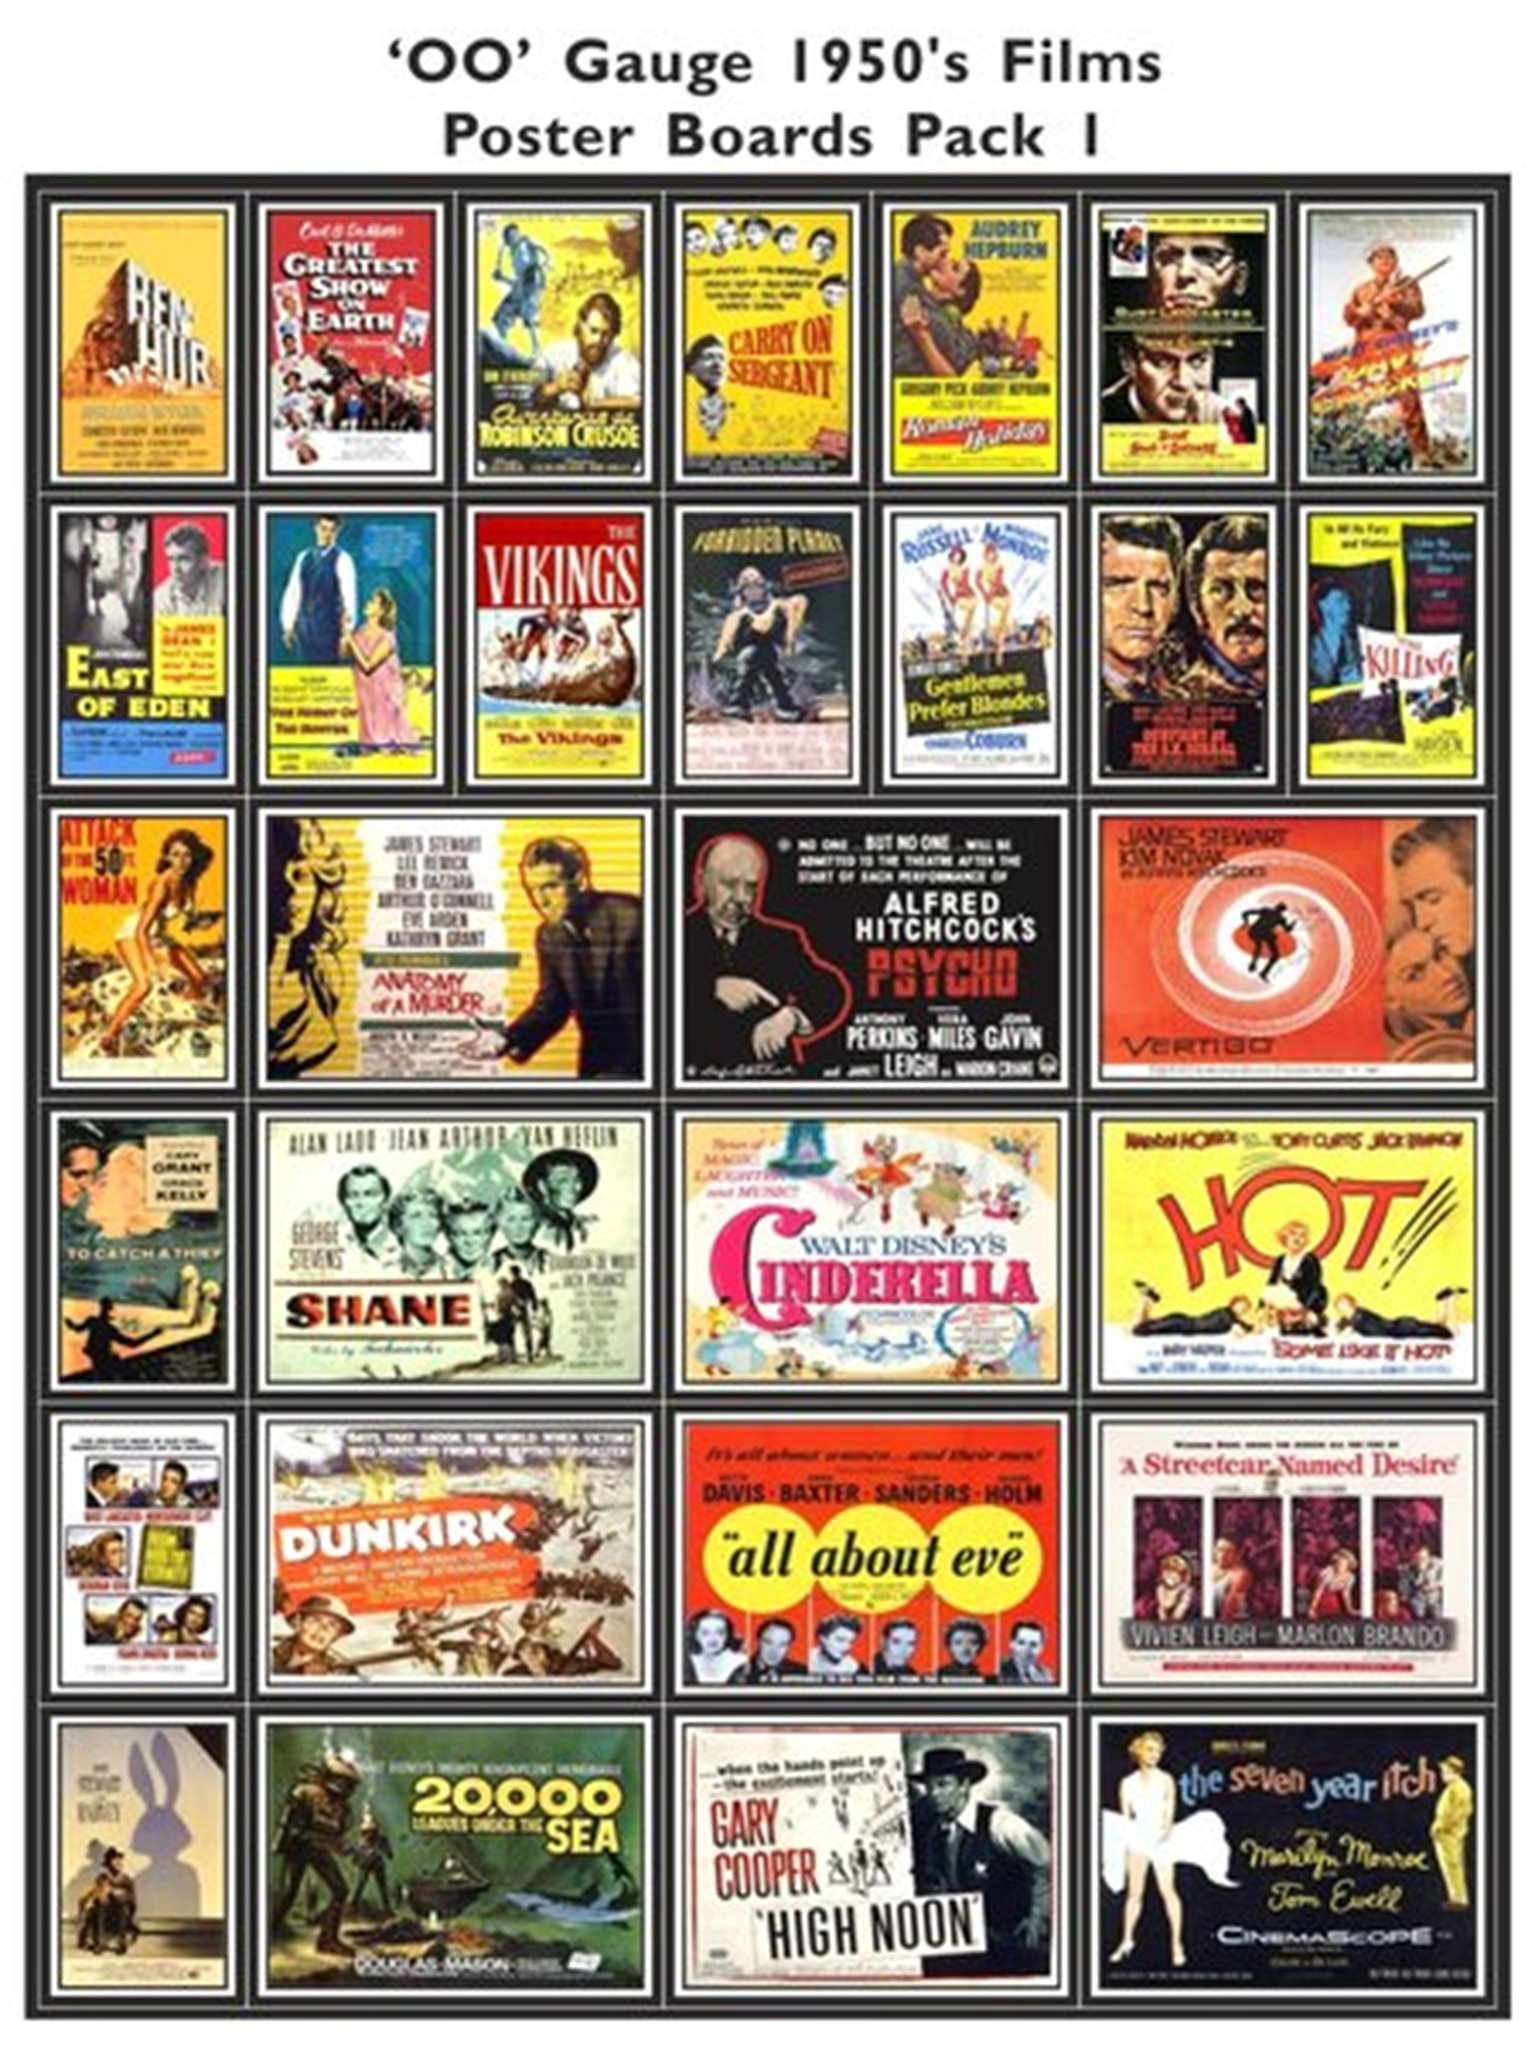 1950's Film Poster Boards Pack 1